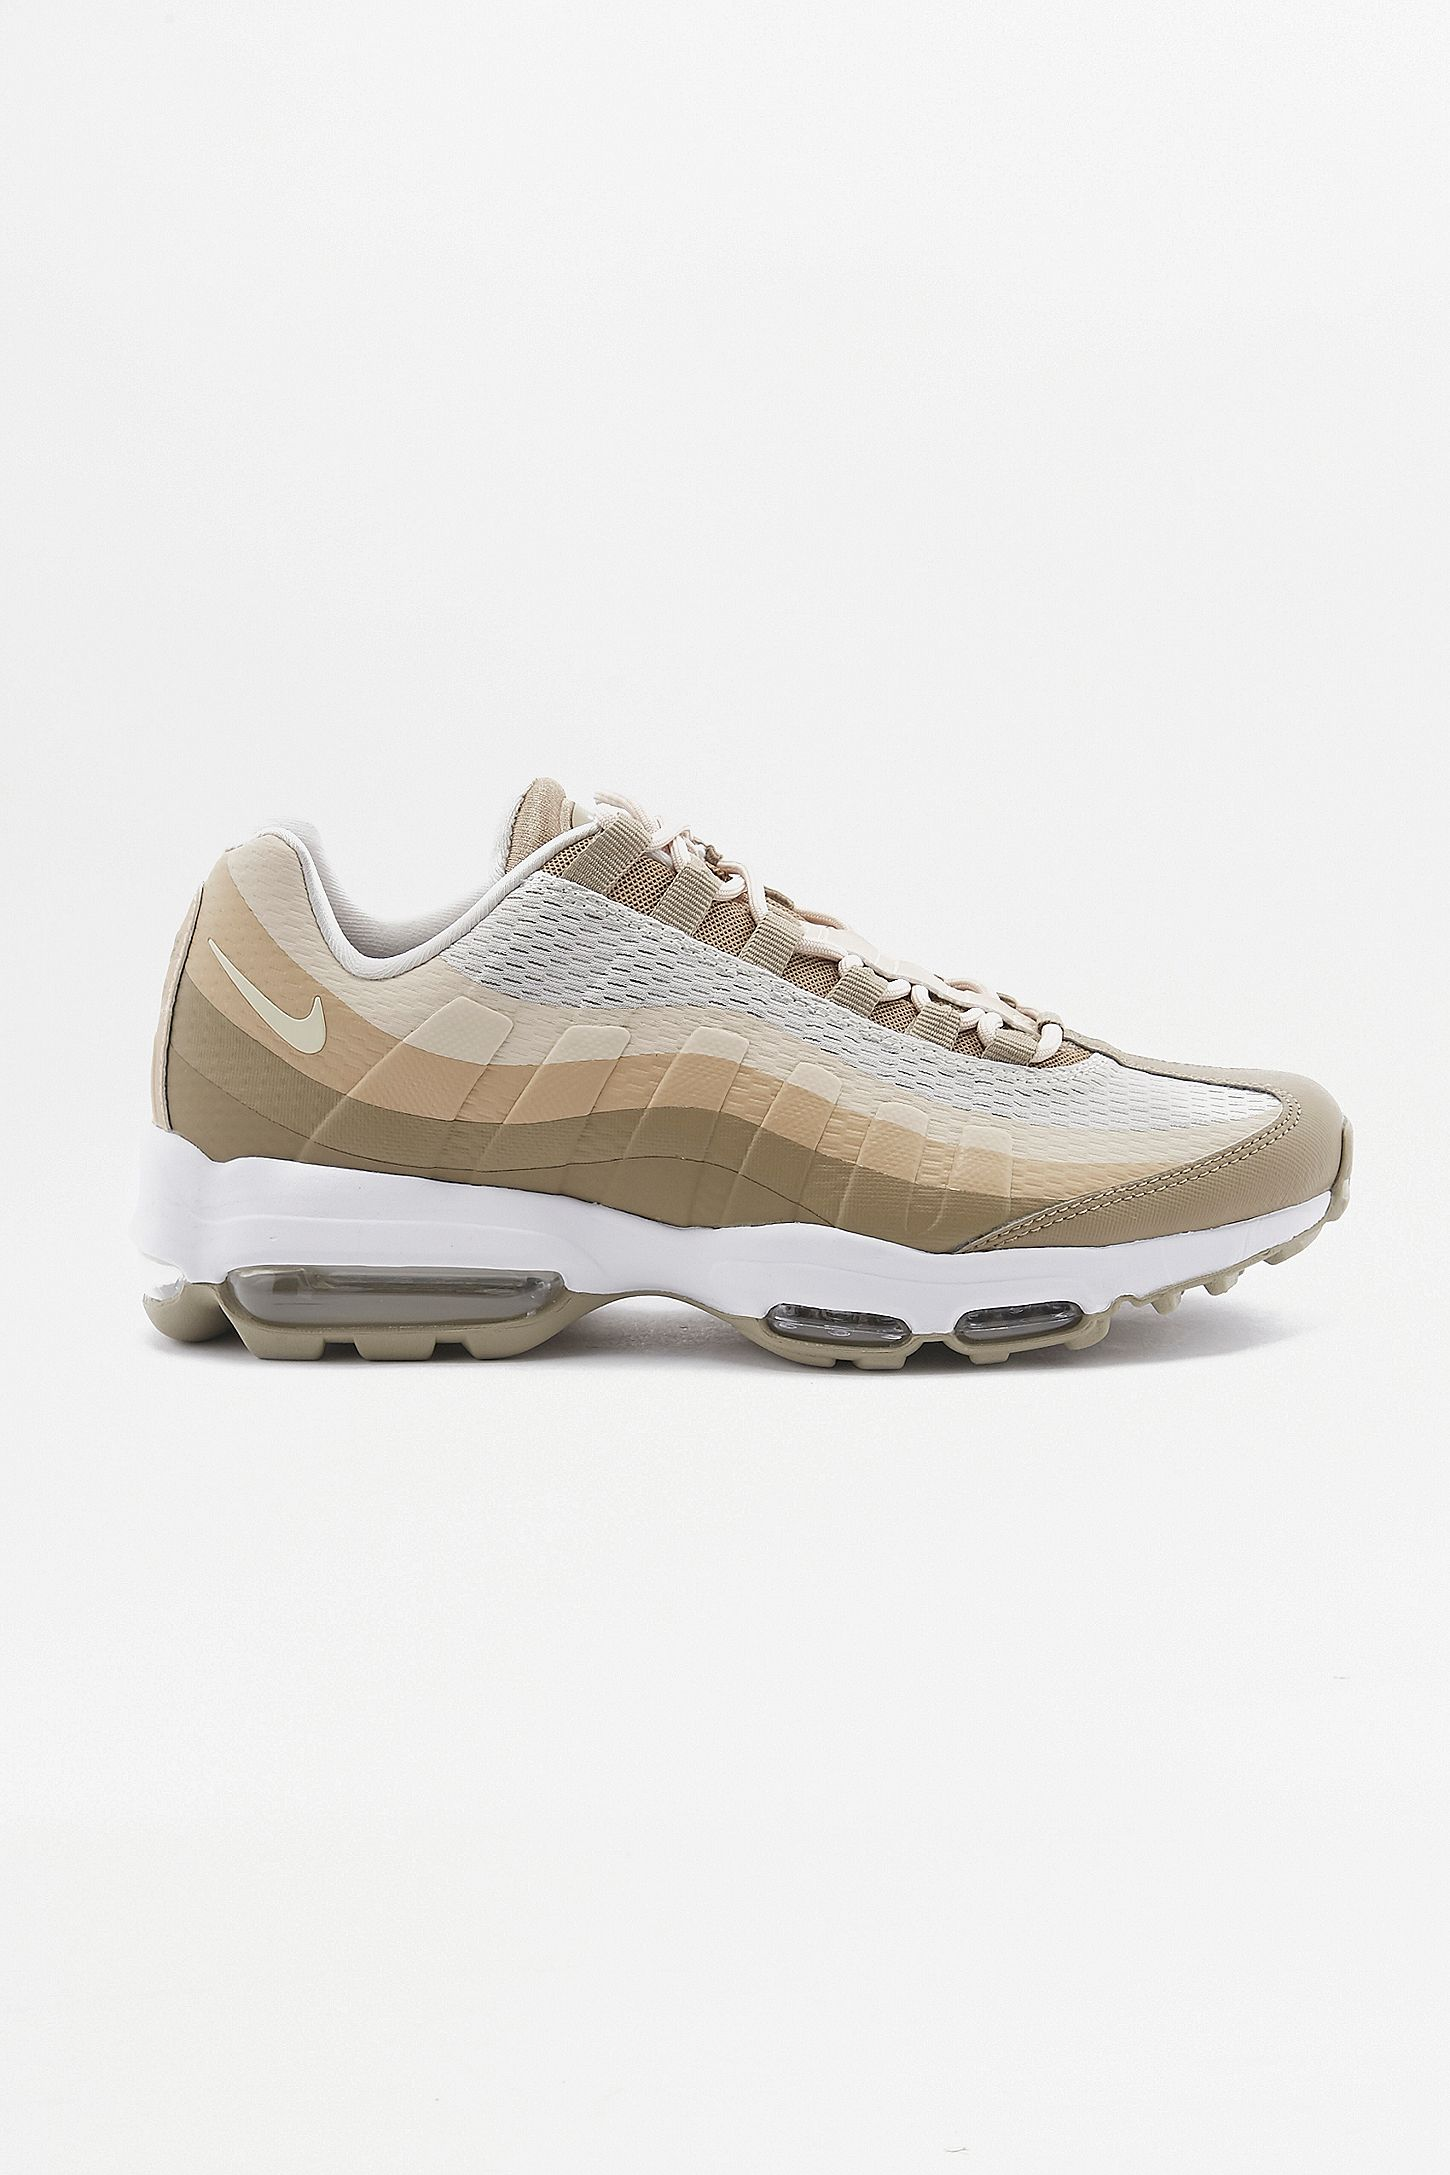 new style 5032b f5bf3 Nike Air Max 95 Ultra Essential Tan Trainers. Click on image to zoom. Hover  to zoom. Double Tap to Zoom